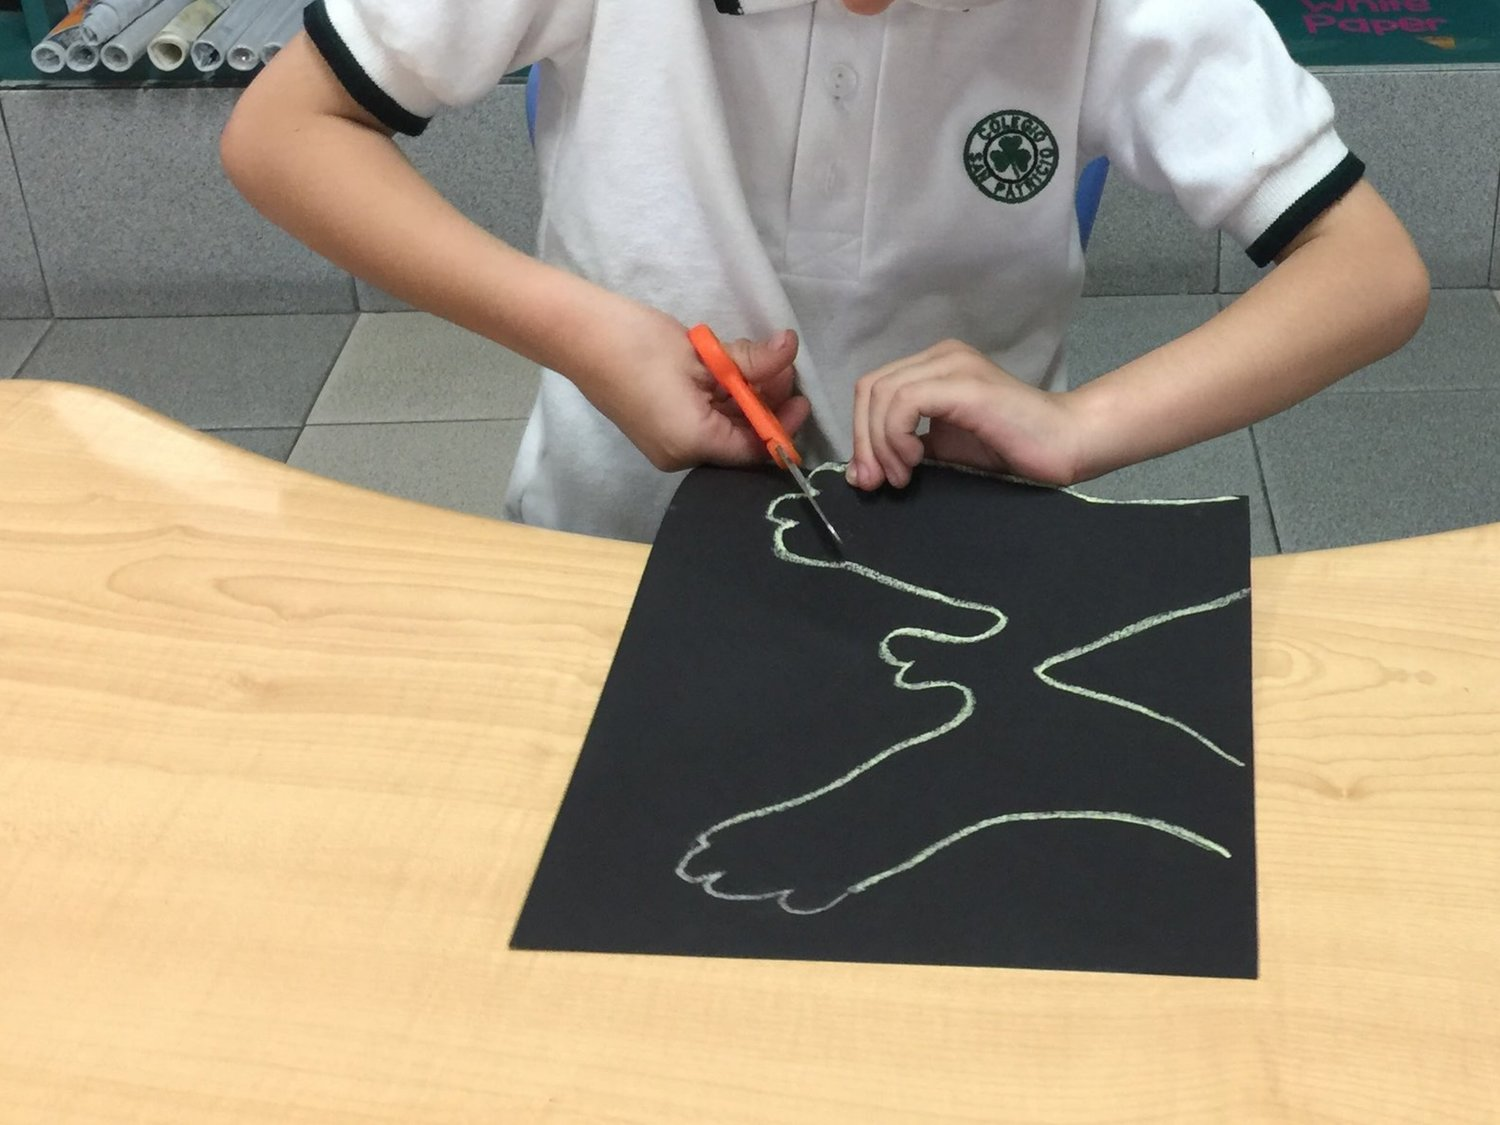 2a975293 The 6 year olds in Prepri C from Colegio San Patricio in Monterrey, Mexico  are making and sharing art with the 4-6 year olds in KG2C from Collegiate  ...